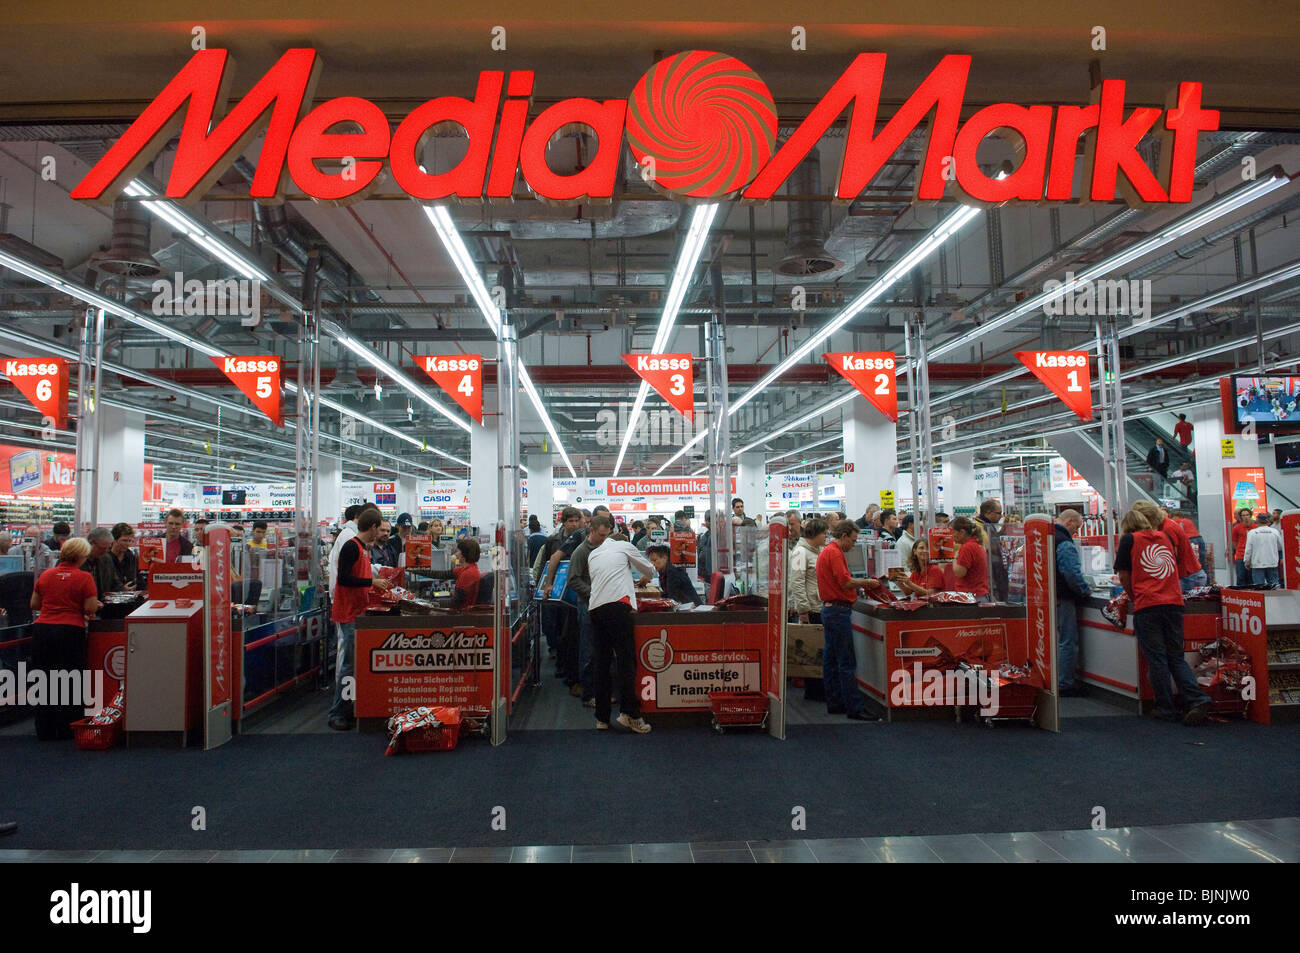 New Shop Opening Stock Photos   New Shop Opening Stock Images - Alamy 94138cfb0619